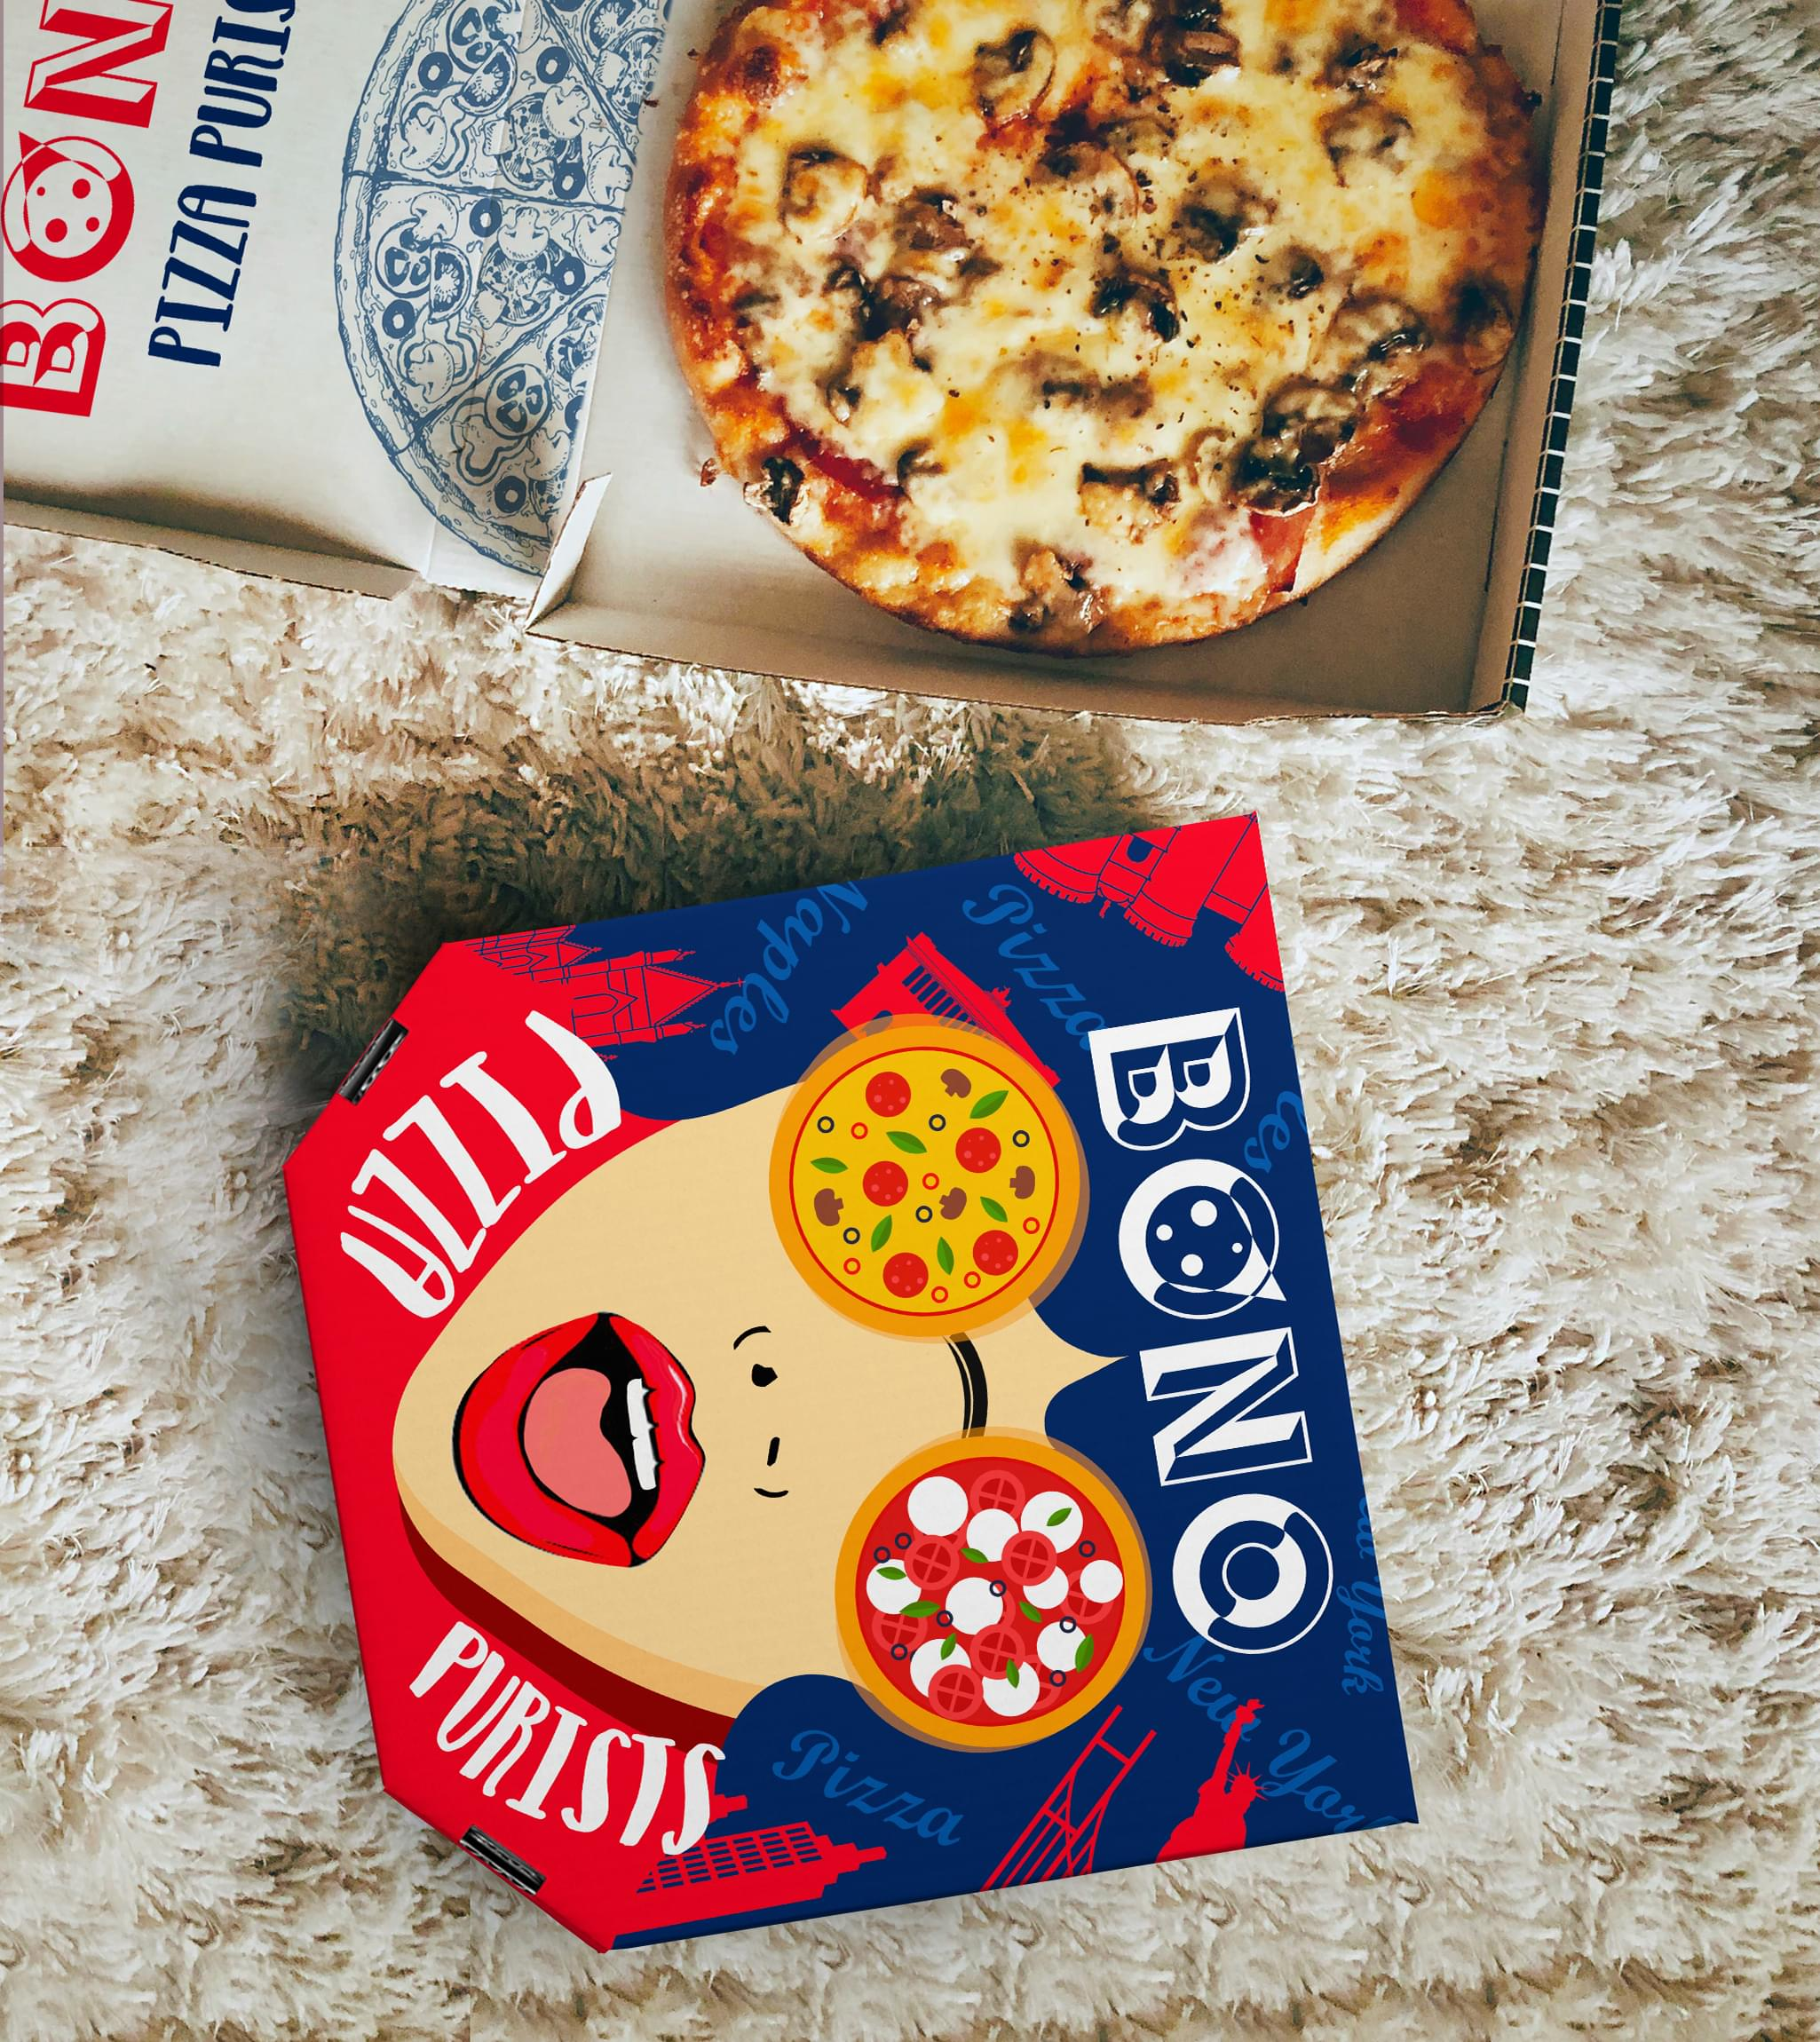 Bono pizza Packaging